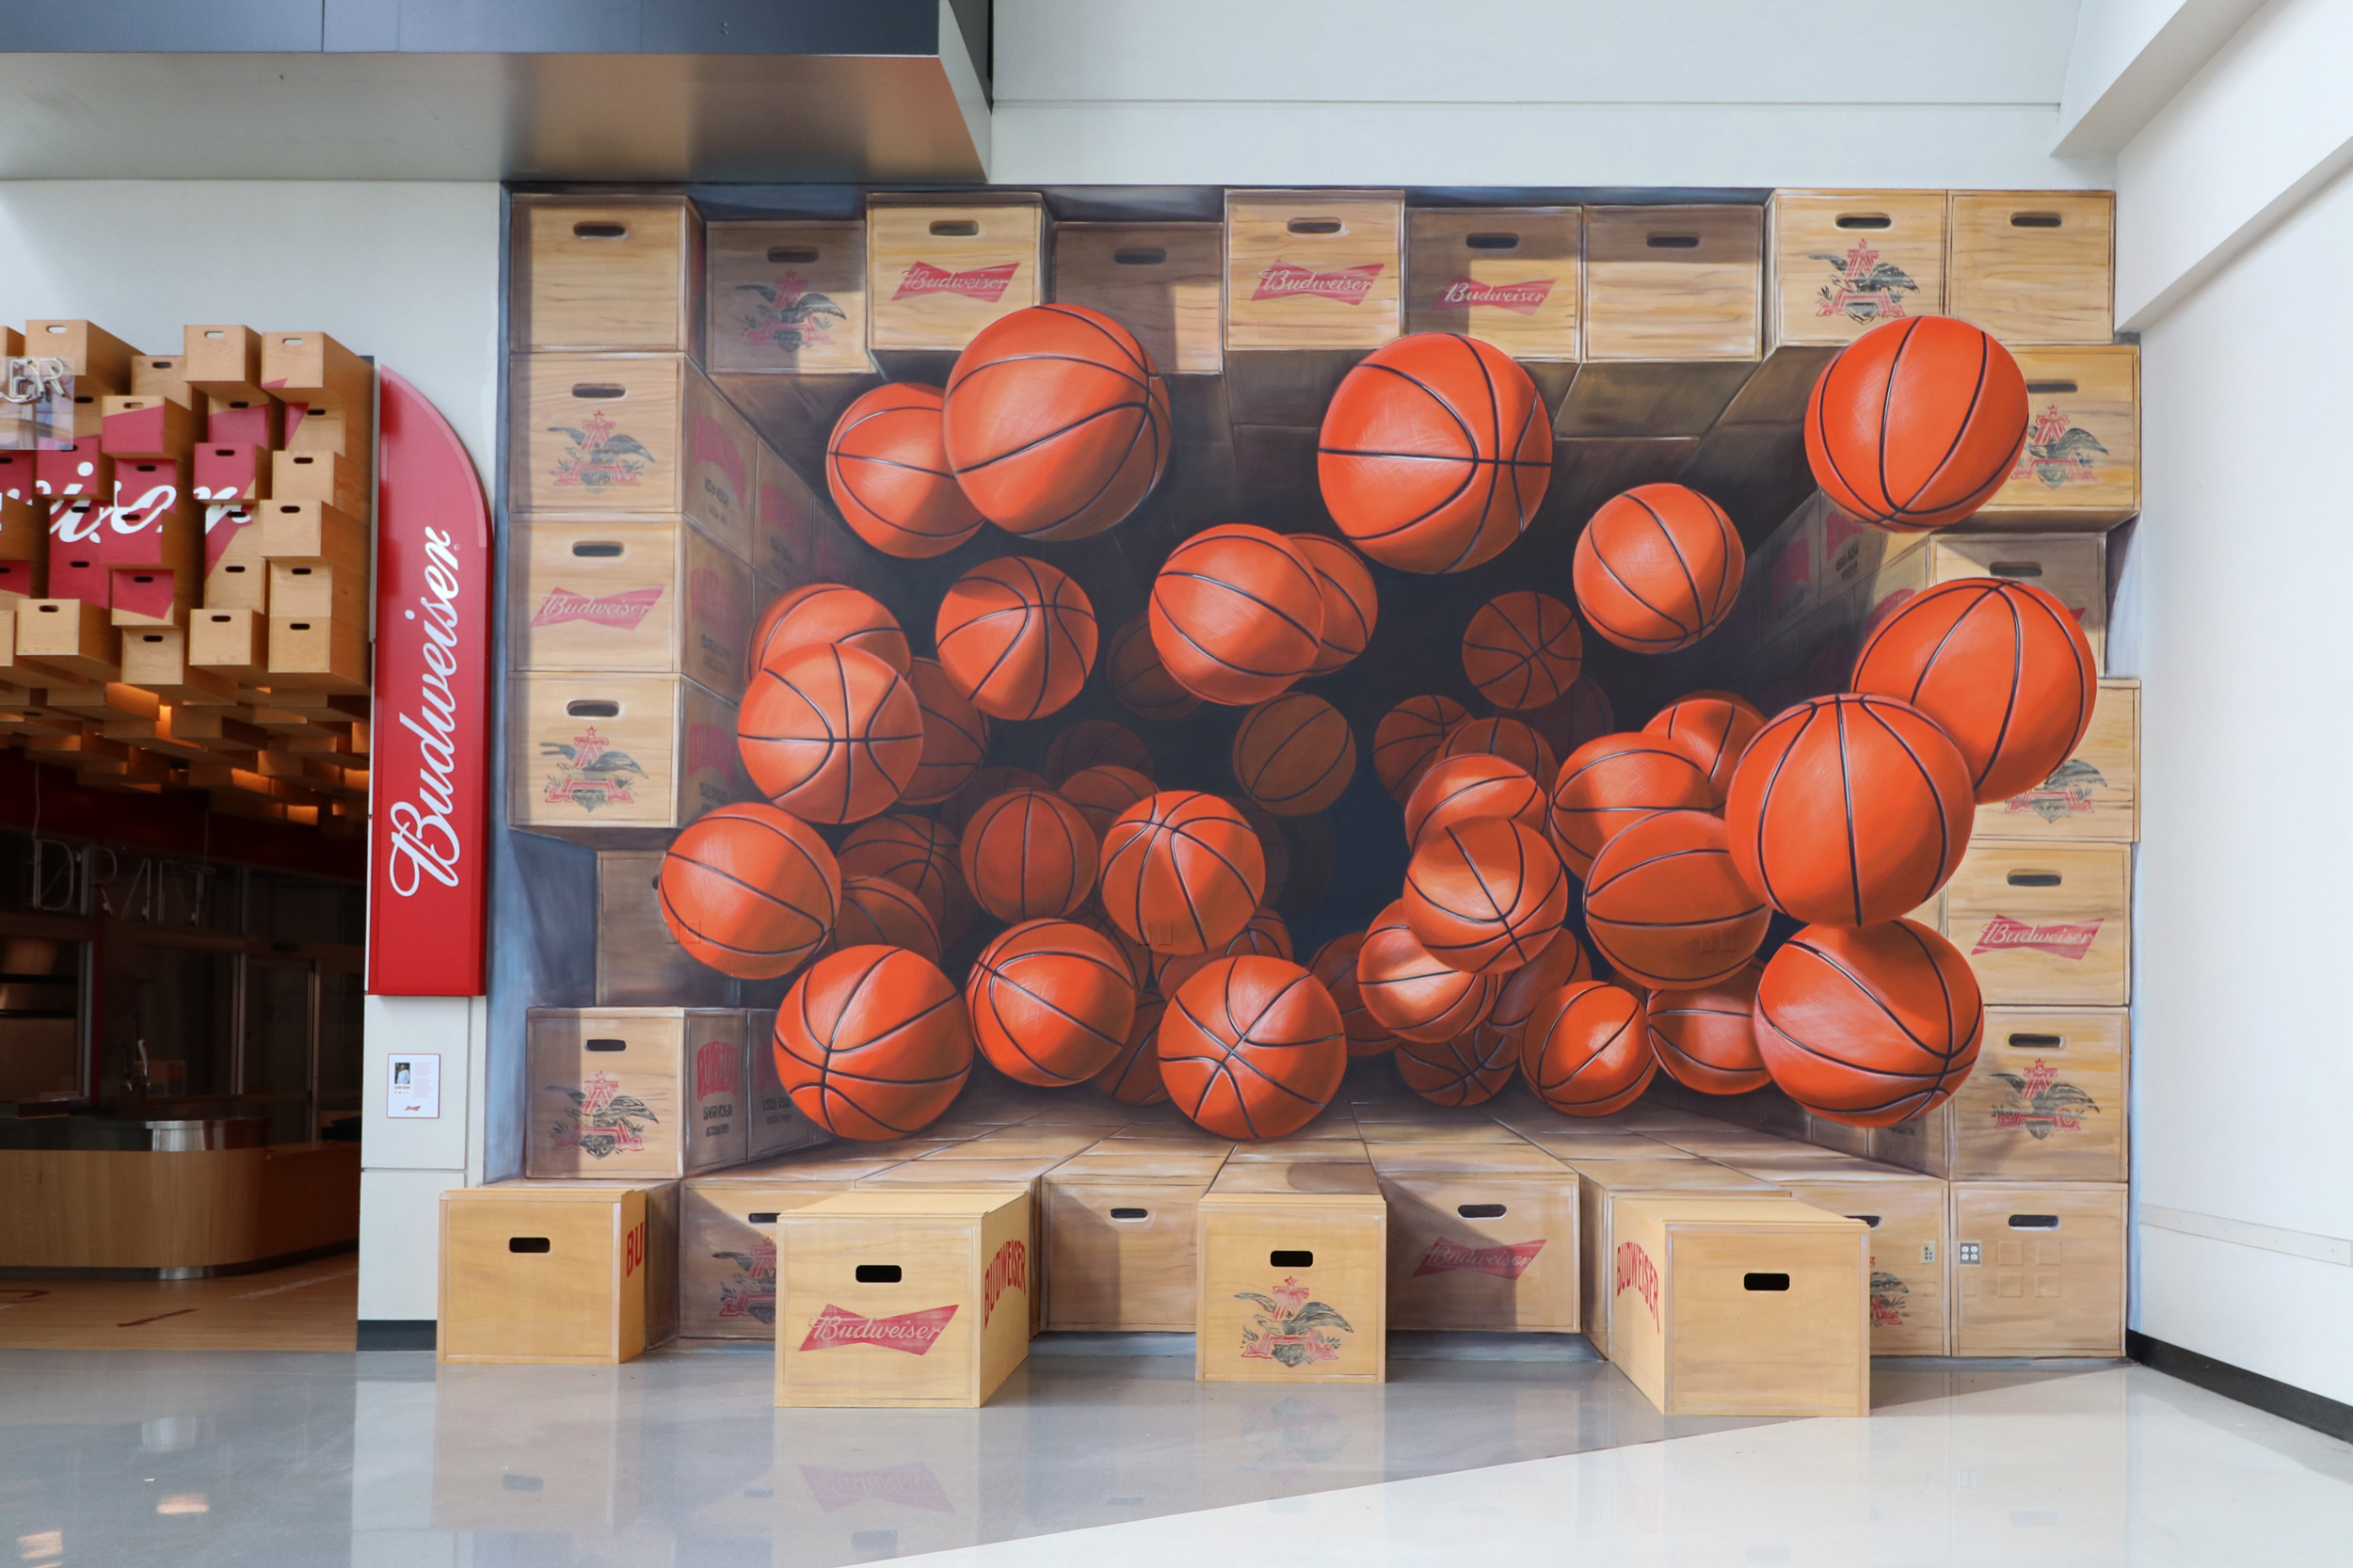 3D Mural with Augmented Reality by Leon Keer at Staples Center LA